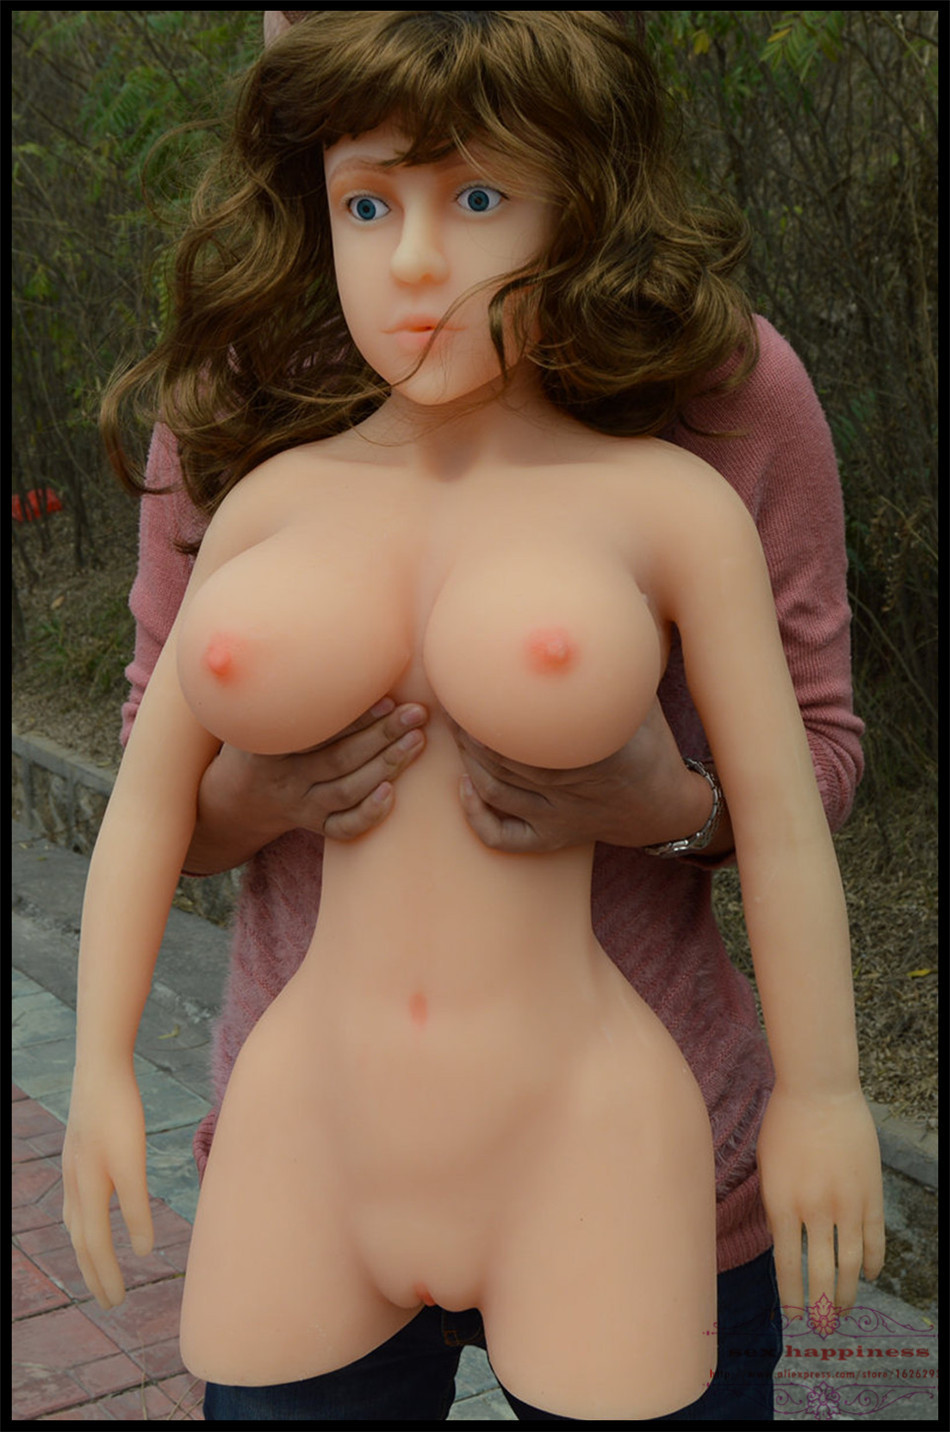 Naked Real Life Sex Doll - Sex Archive-4066